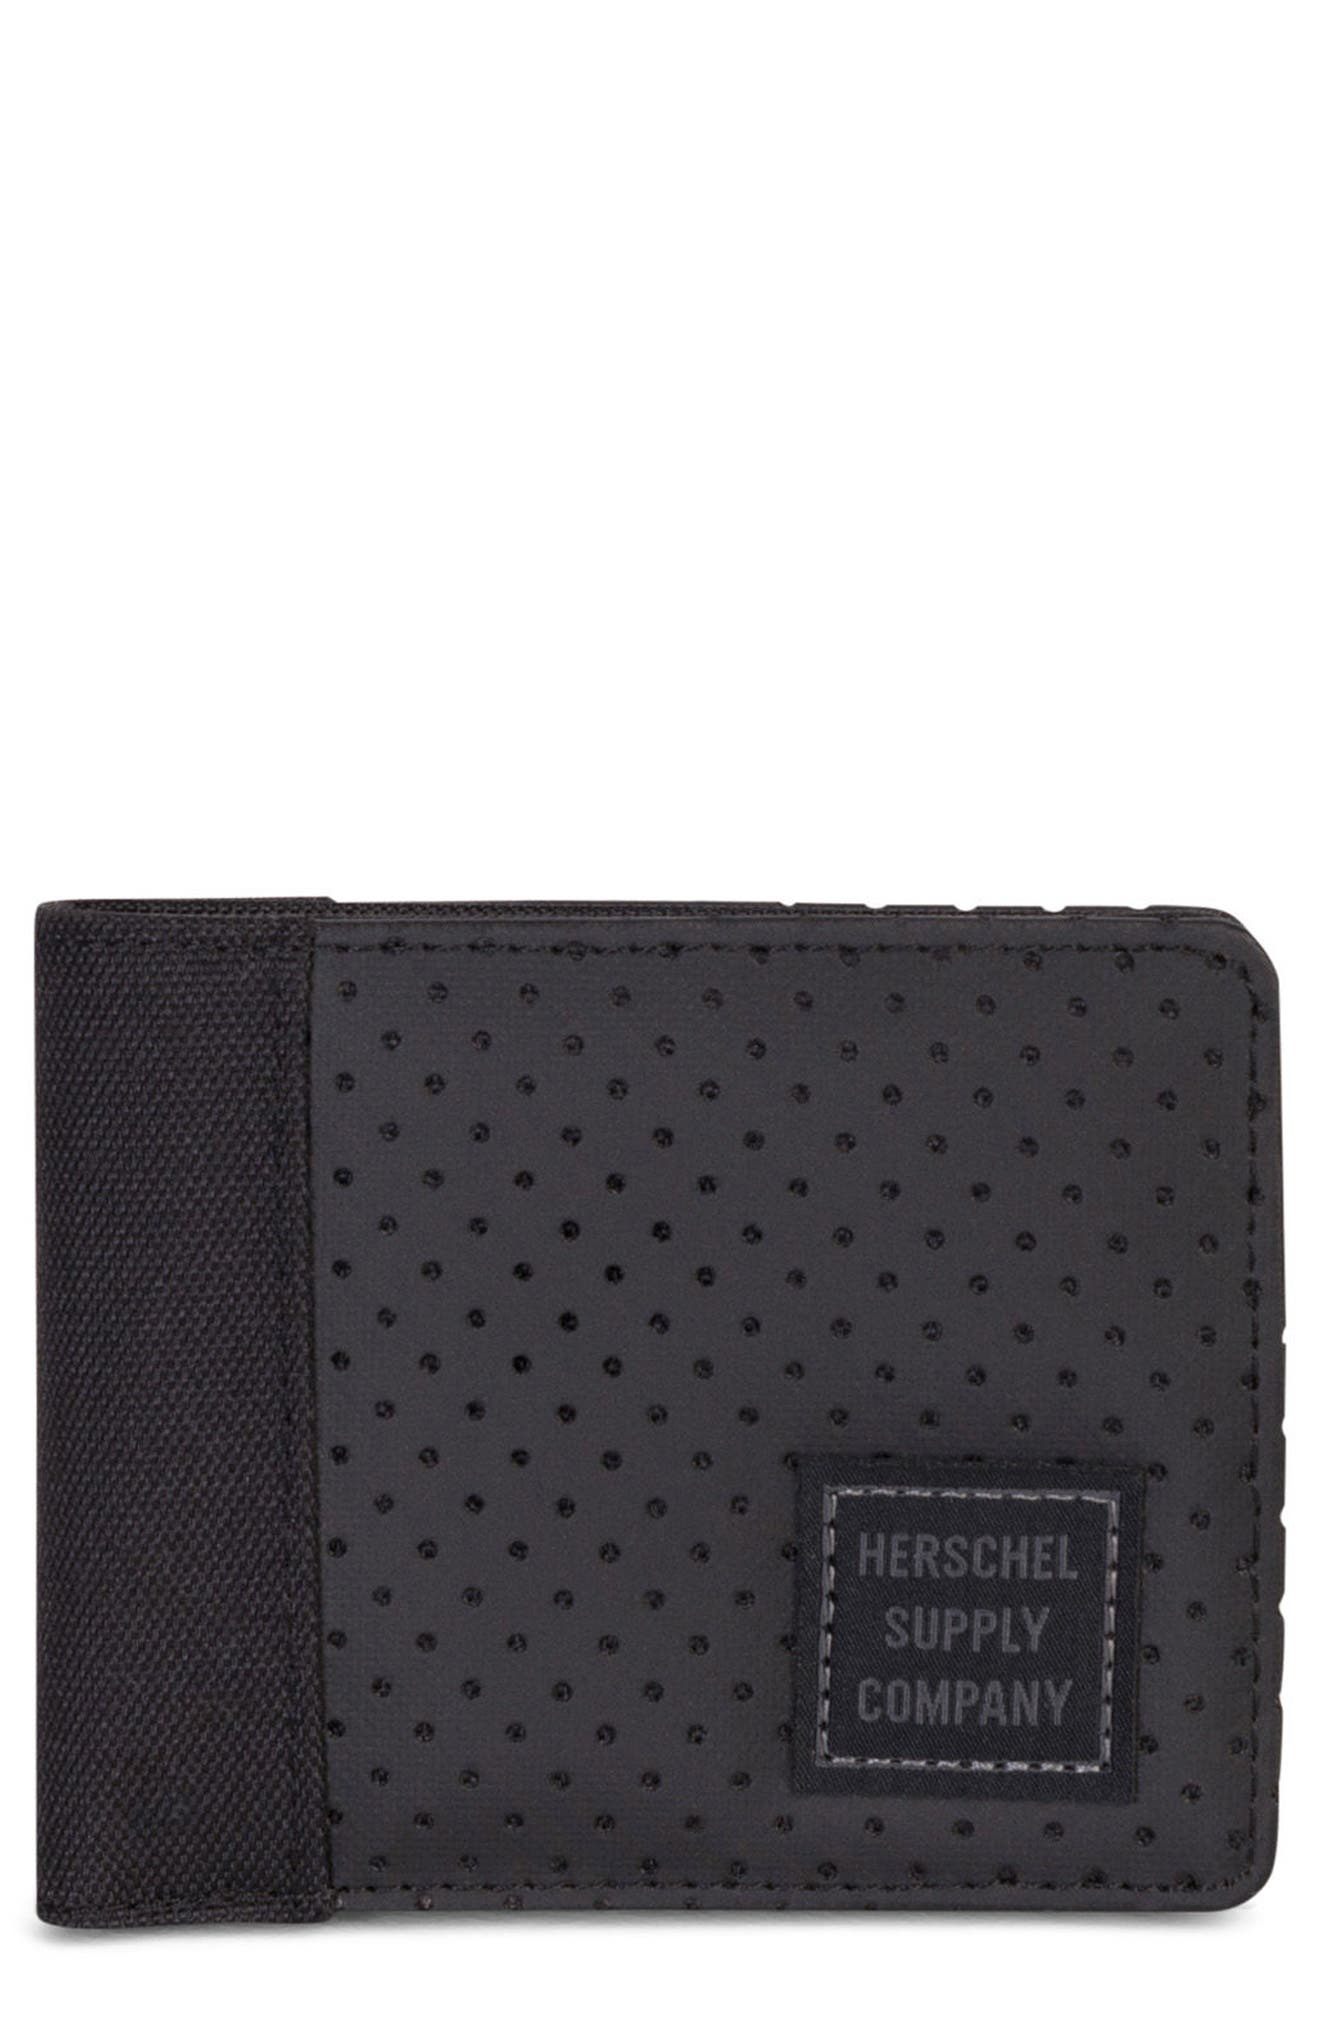 Herschel Supply Co. Edward Aspect Perforated Wallet